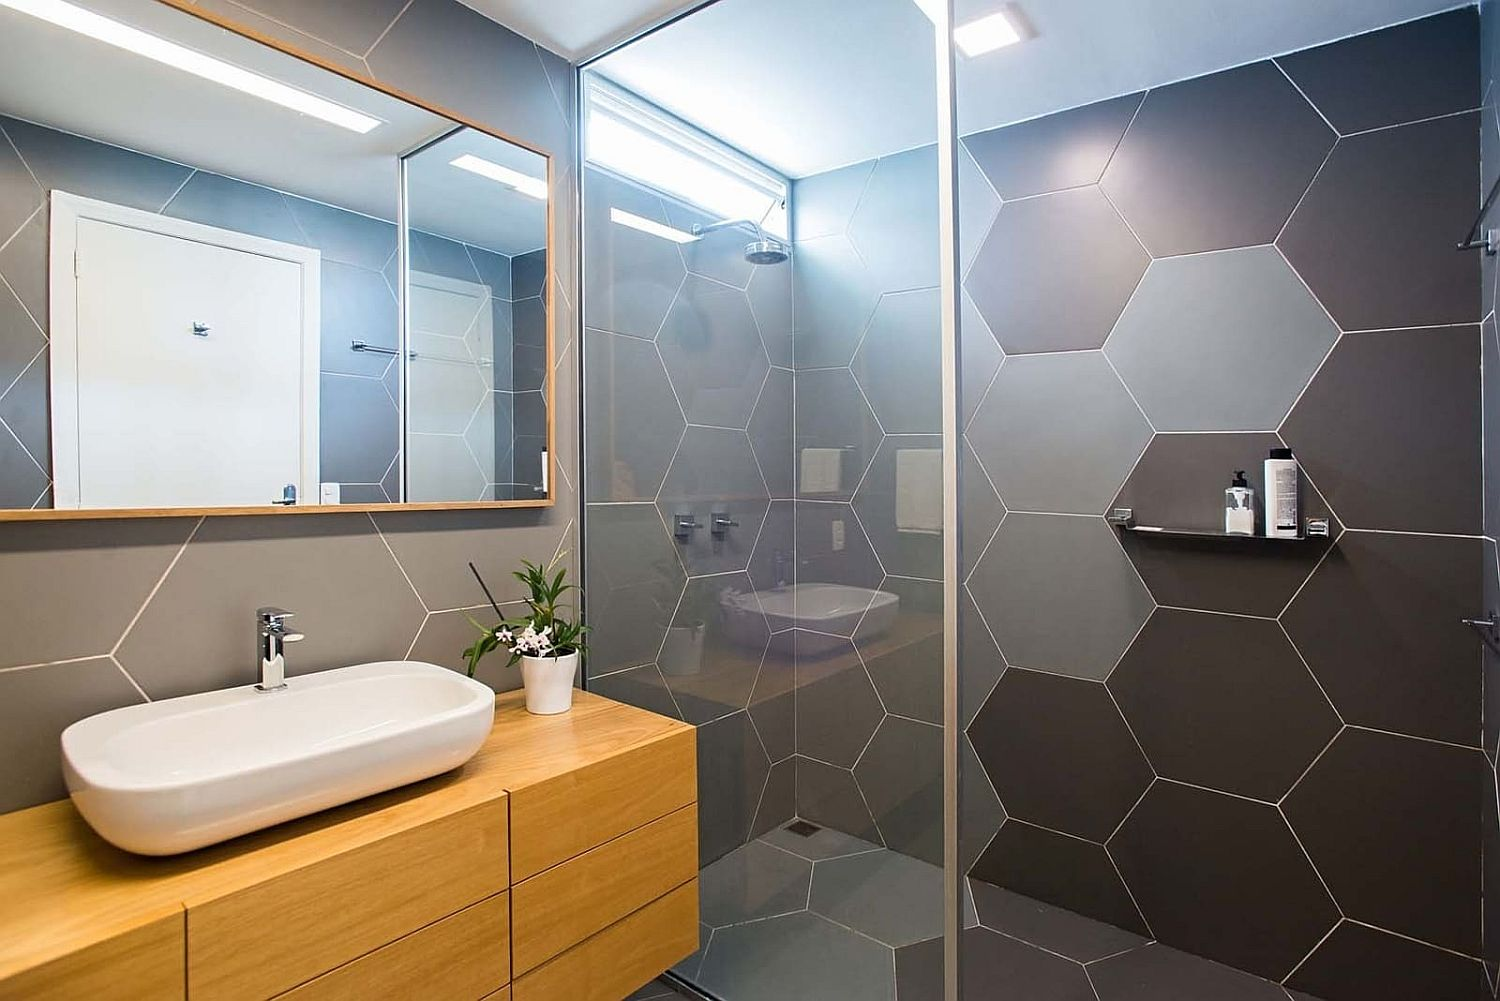 Gorgeous hexagonal bathroom tiles and wooden vanity for the small bathroom